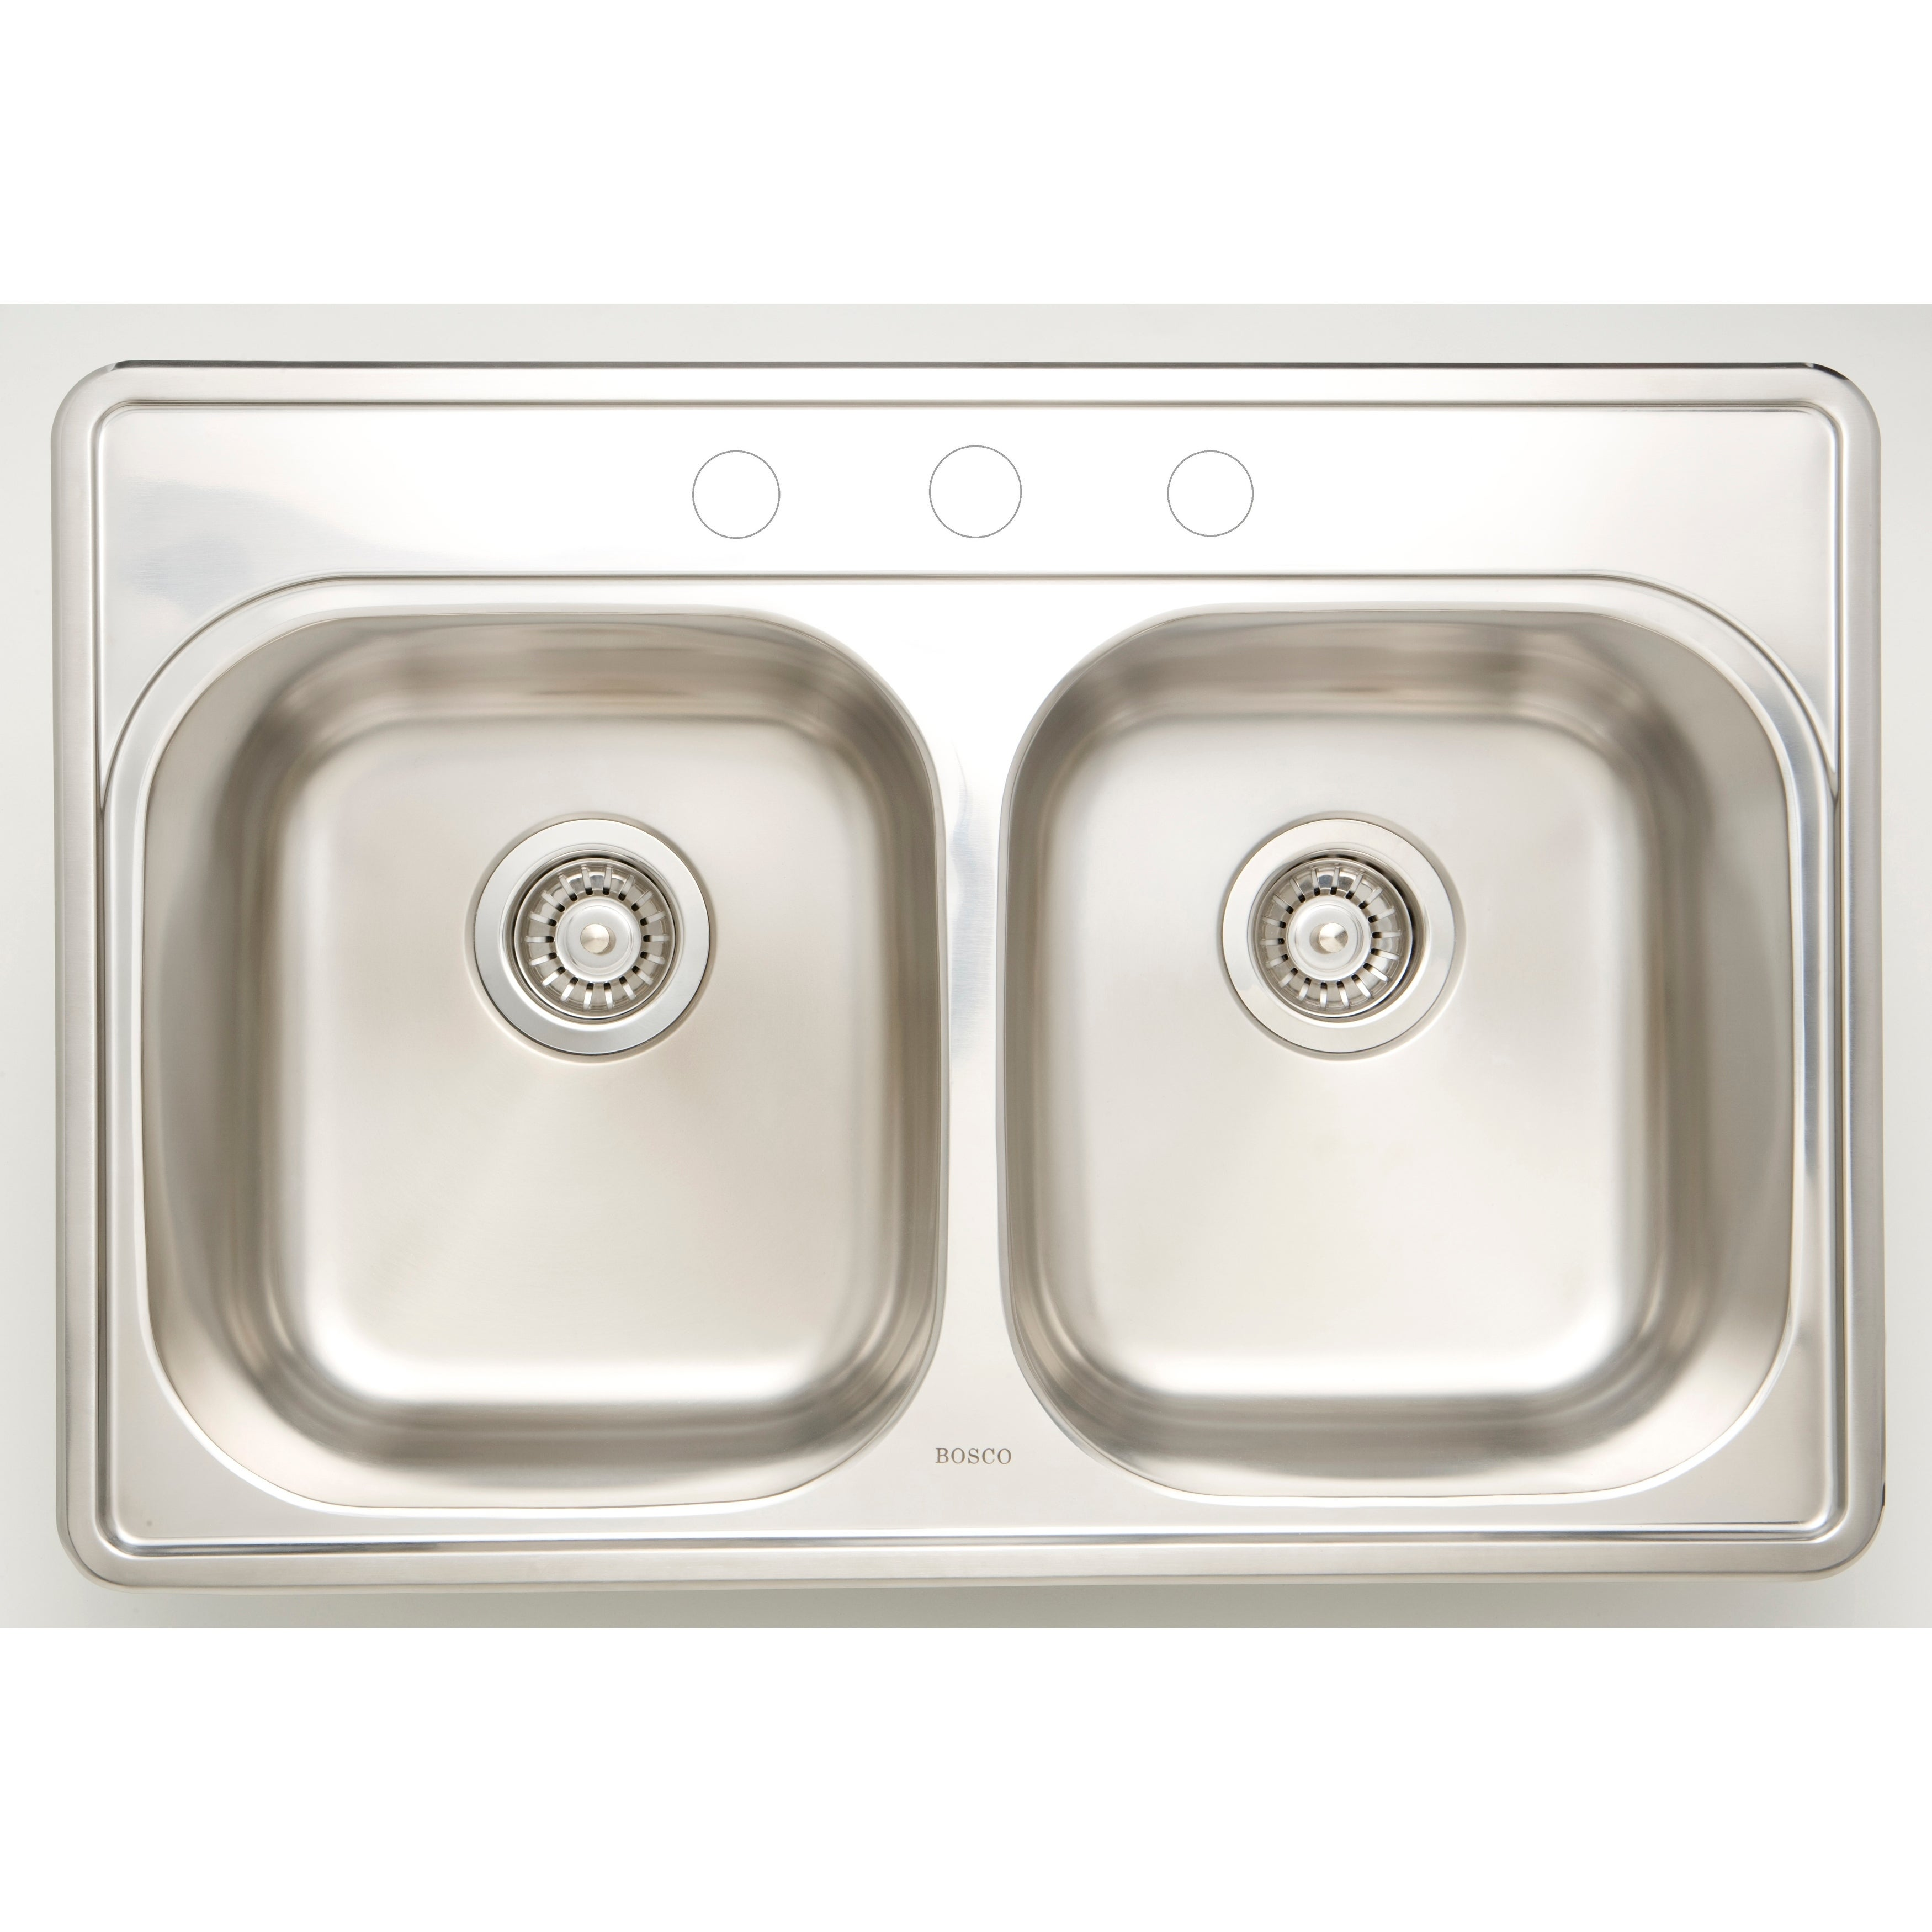 30 5 In W Csa Approved Chrome Kitchen Sink With Stainless Steel Finish And 18 Gauge Overstock 25607207